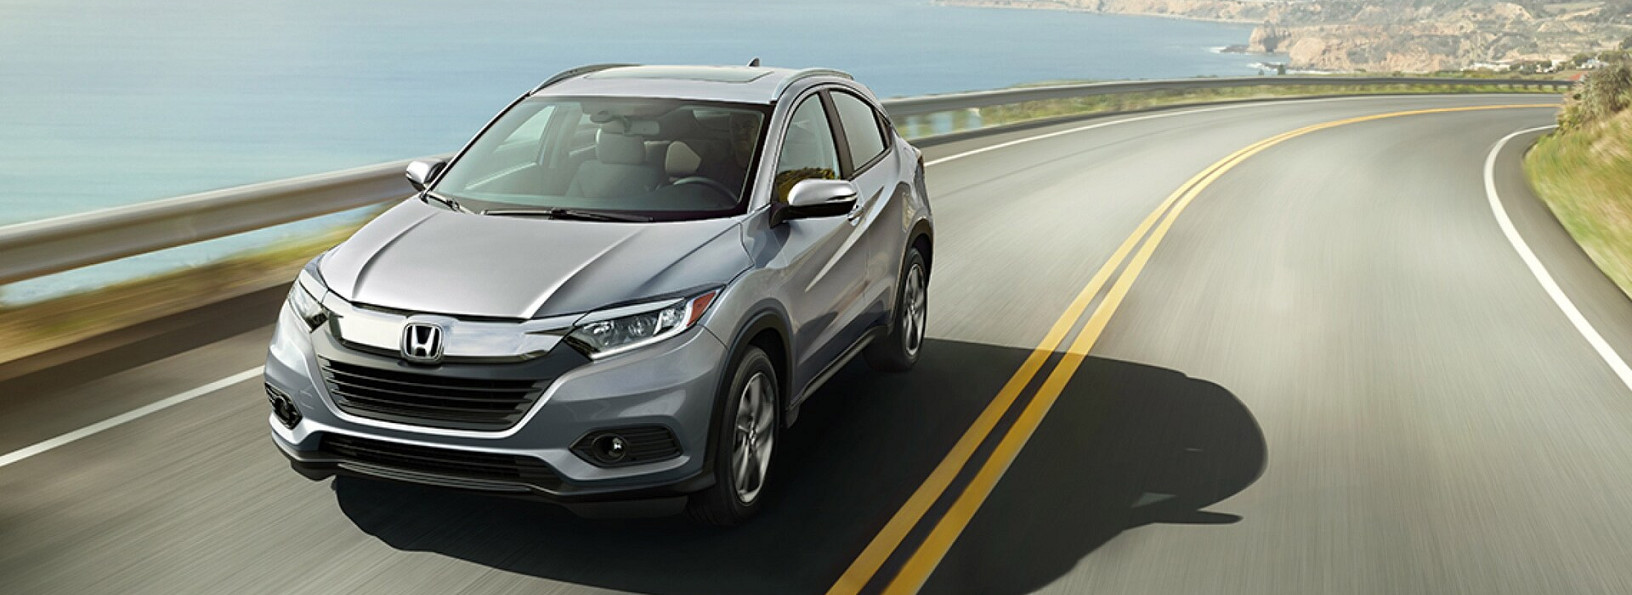 2020 Honda HR-V Leasing near Houston, TX